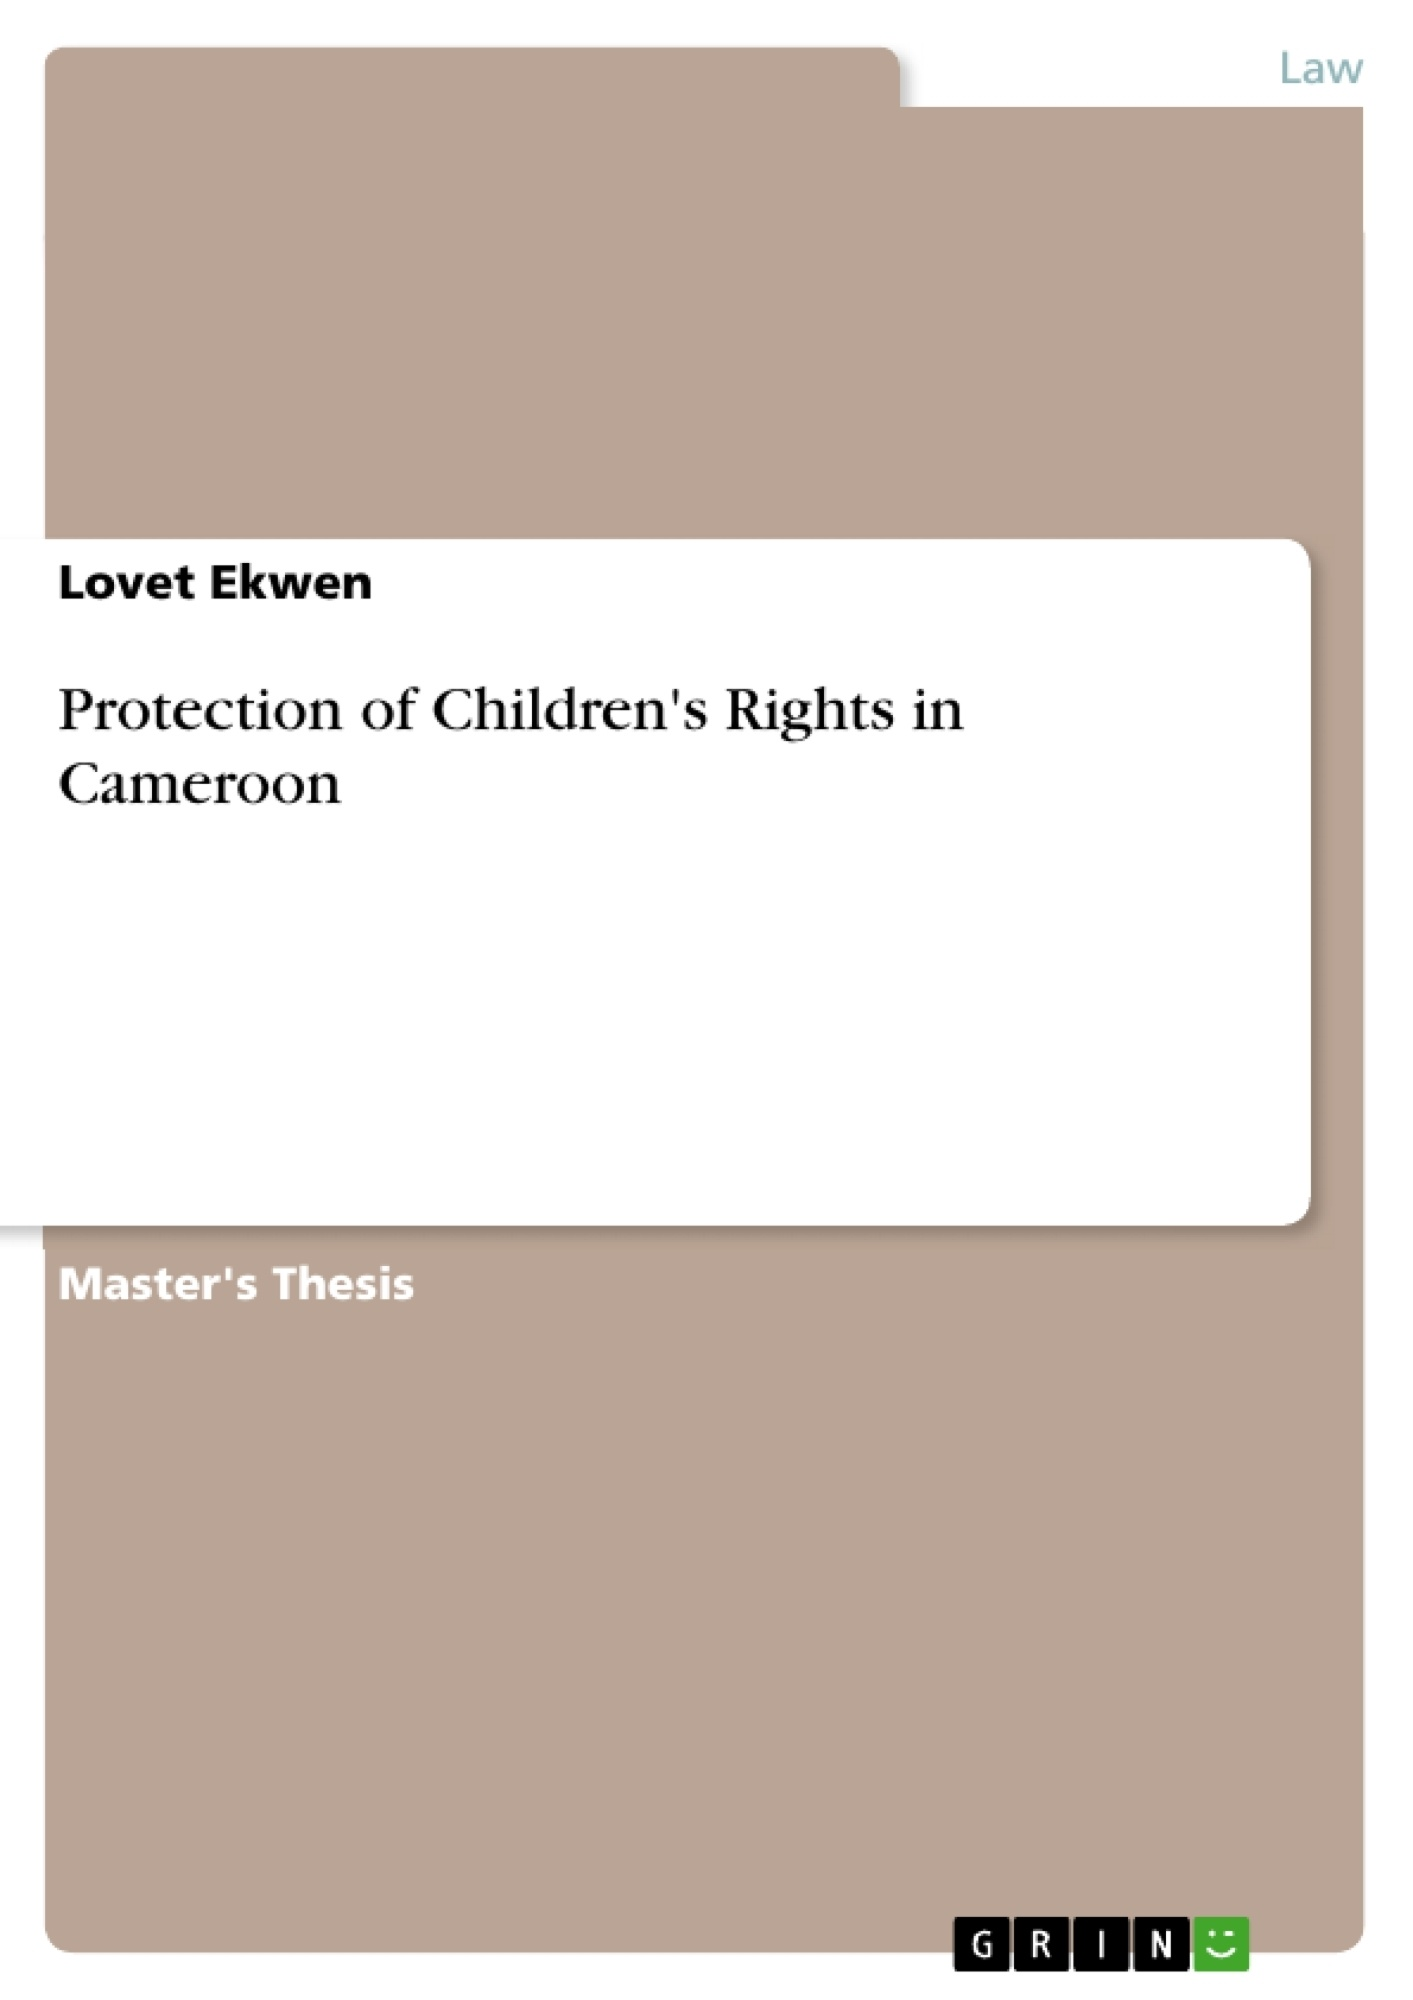 The Federal Law on the Protection of Children imposes obligations